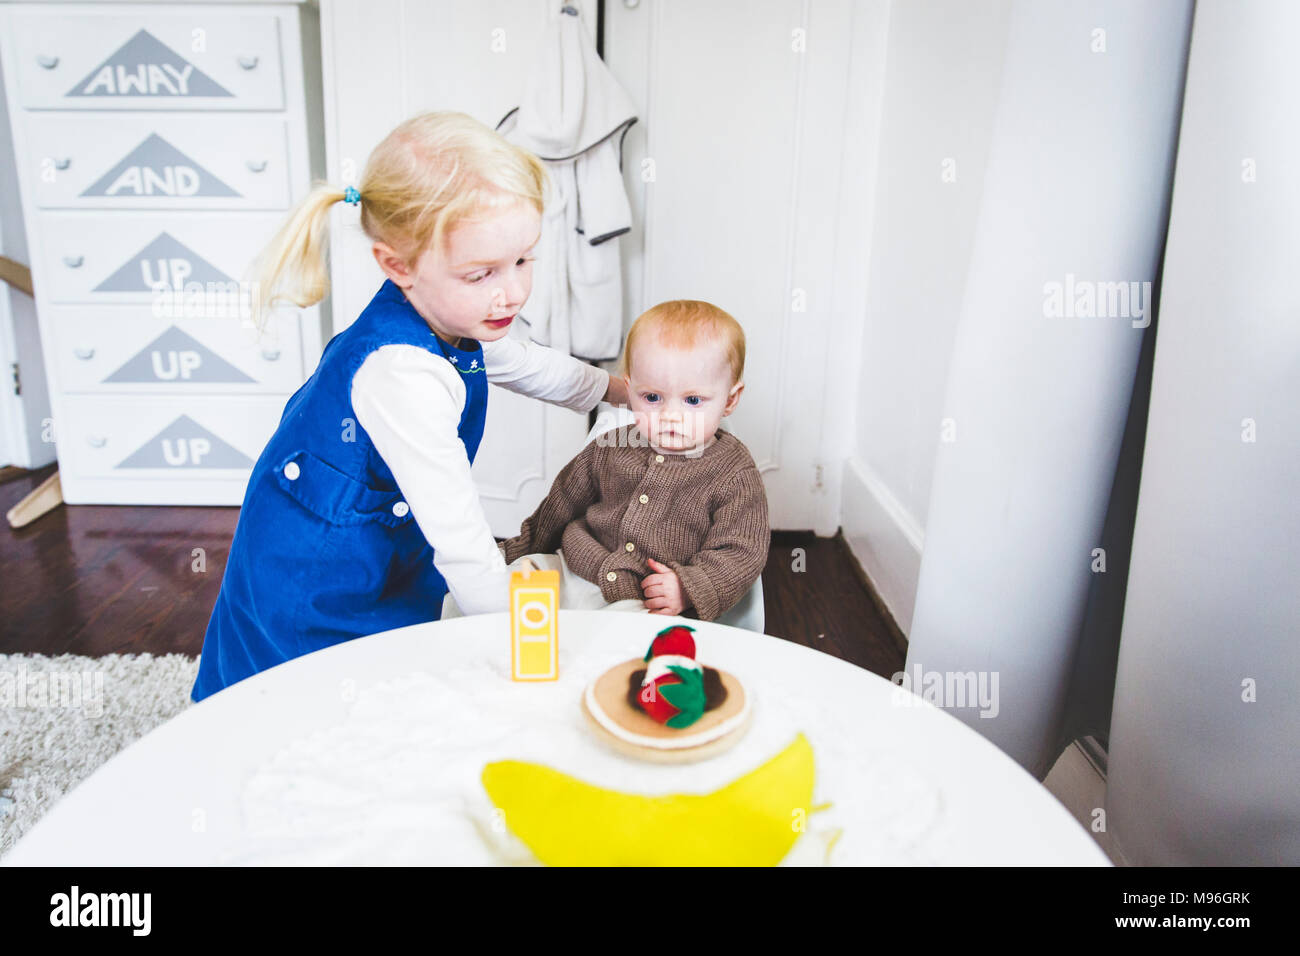 Girl helping baby at table - Stock Image